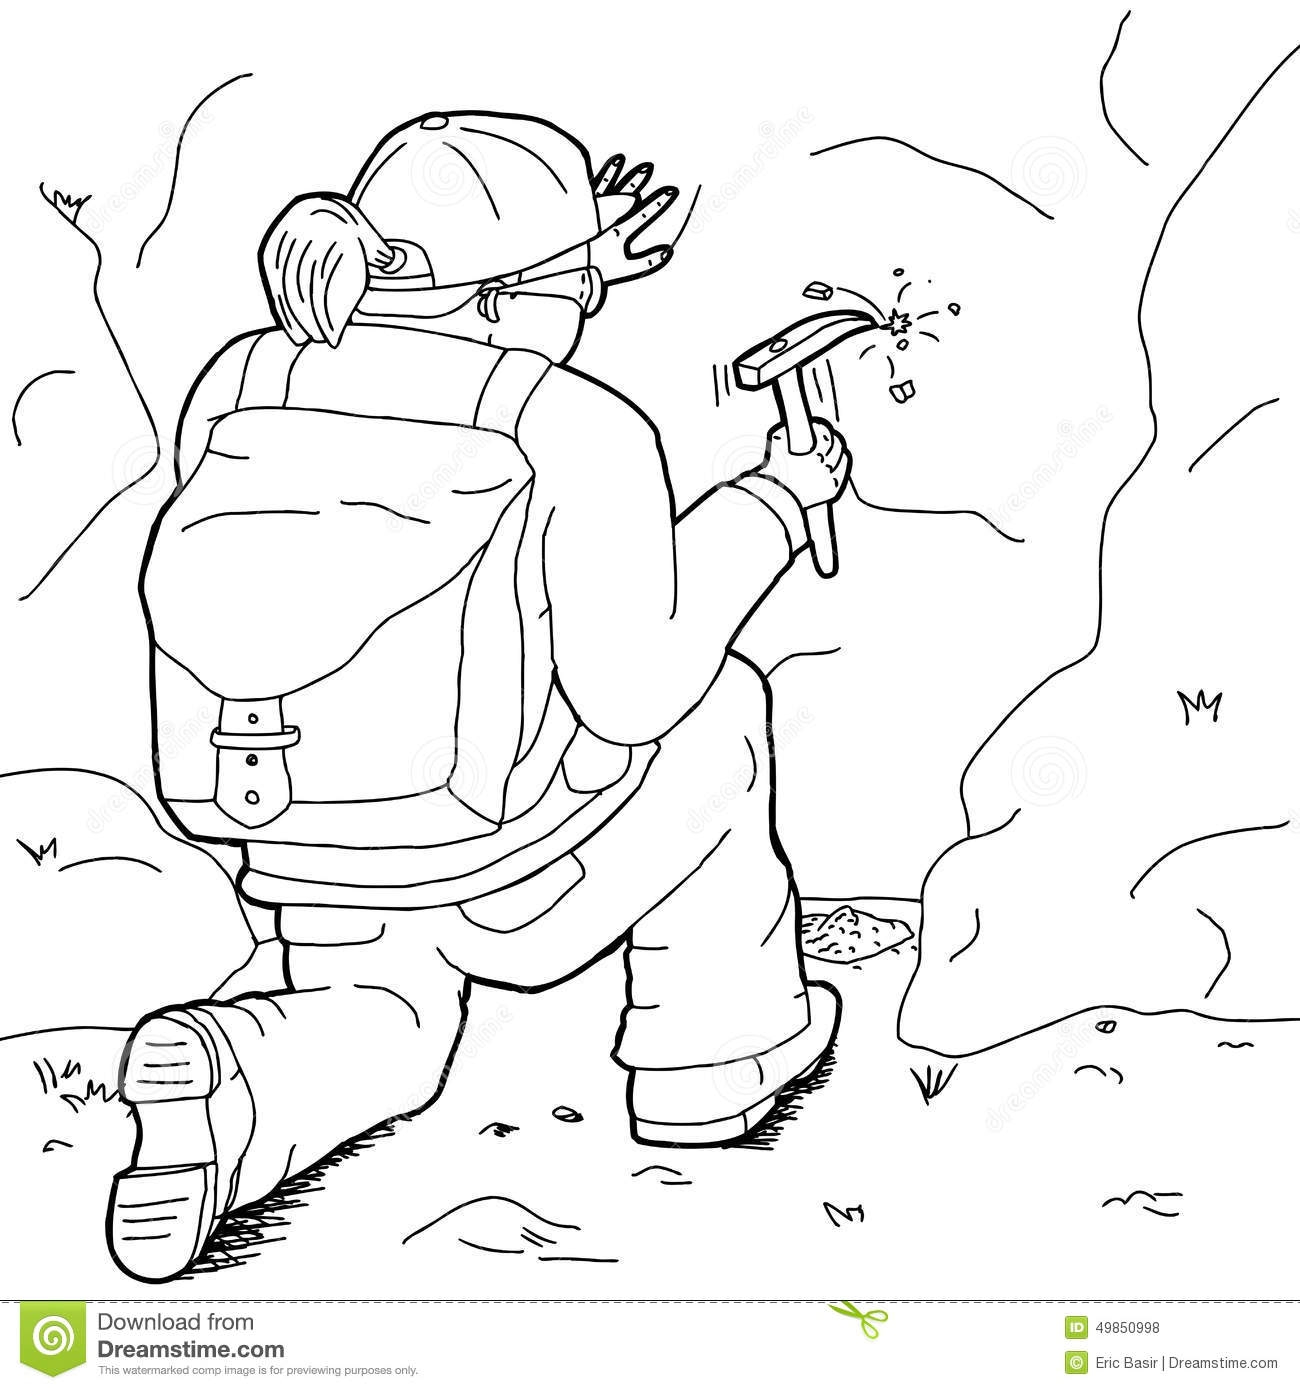 Outline Of Lady Geologist Stock Illustration Illustration Of Hand